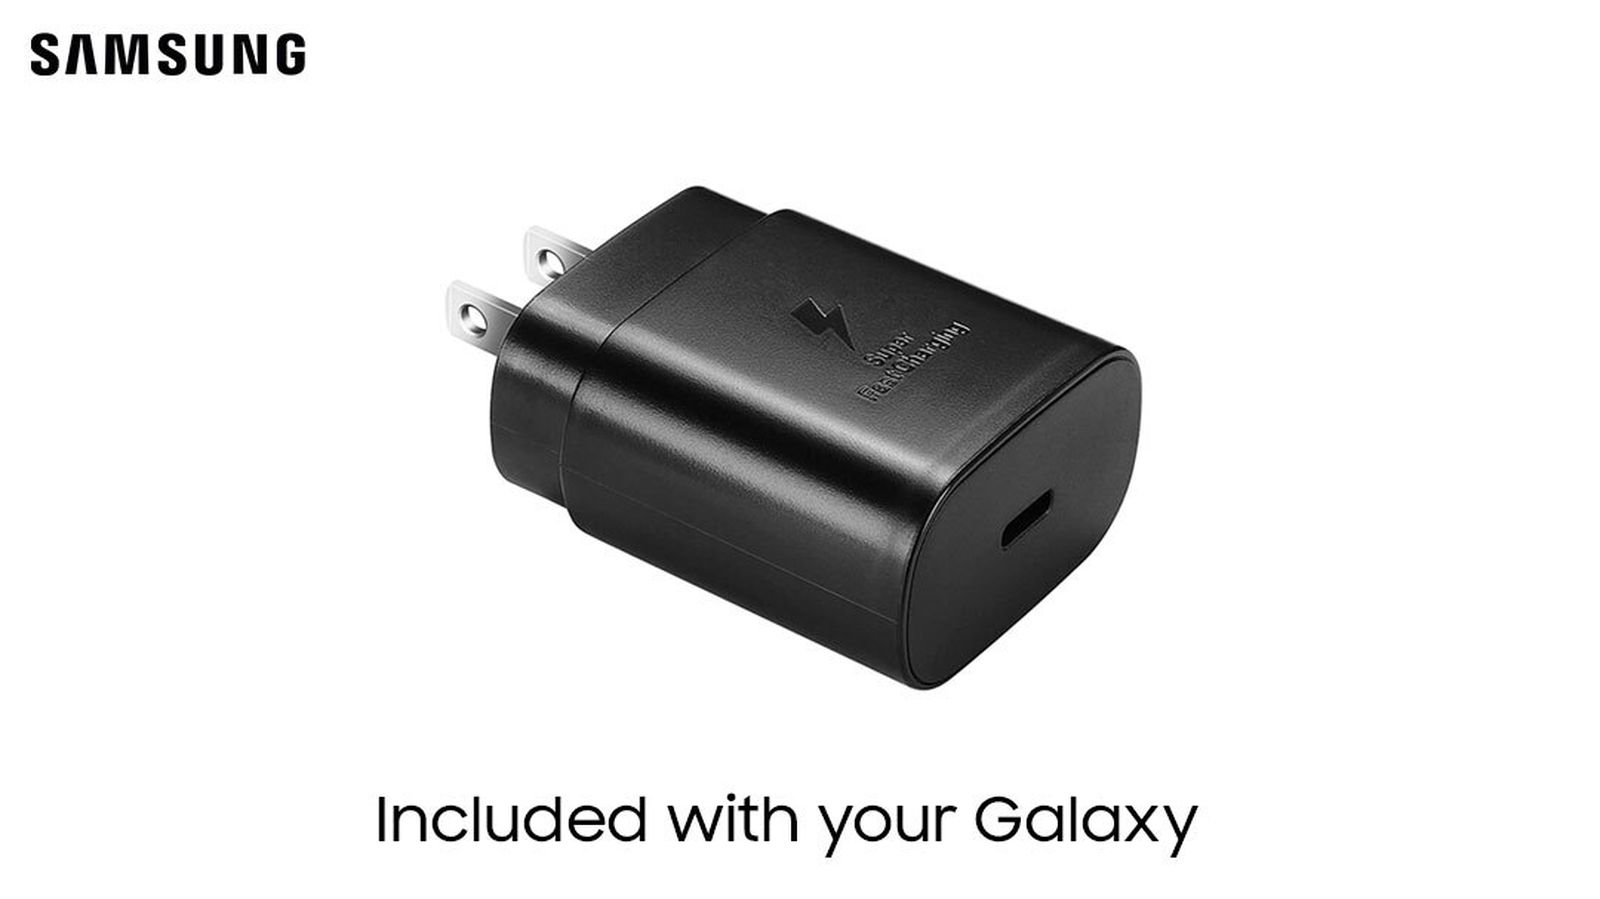 Samsung Mocks Apple for Ditching Power Adapters With iPhone 12 Lineup – Mac Rumors